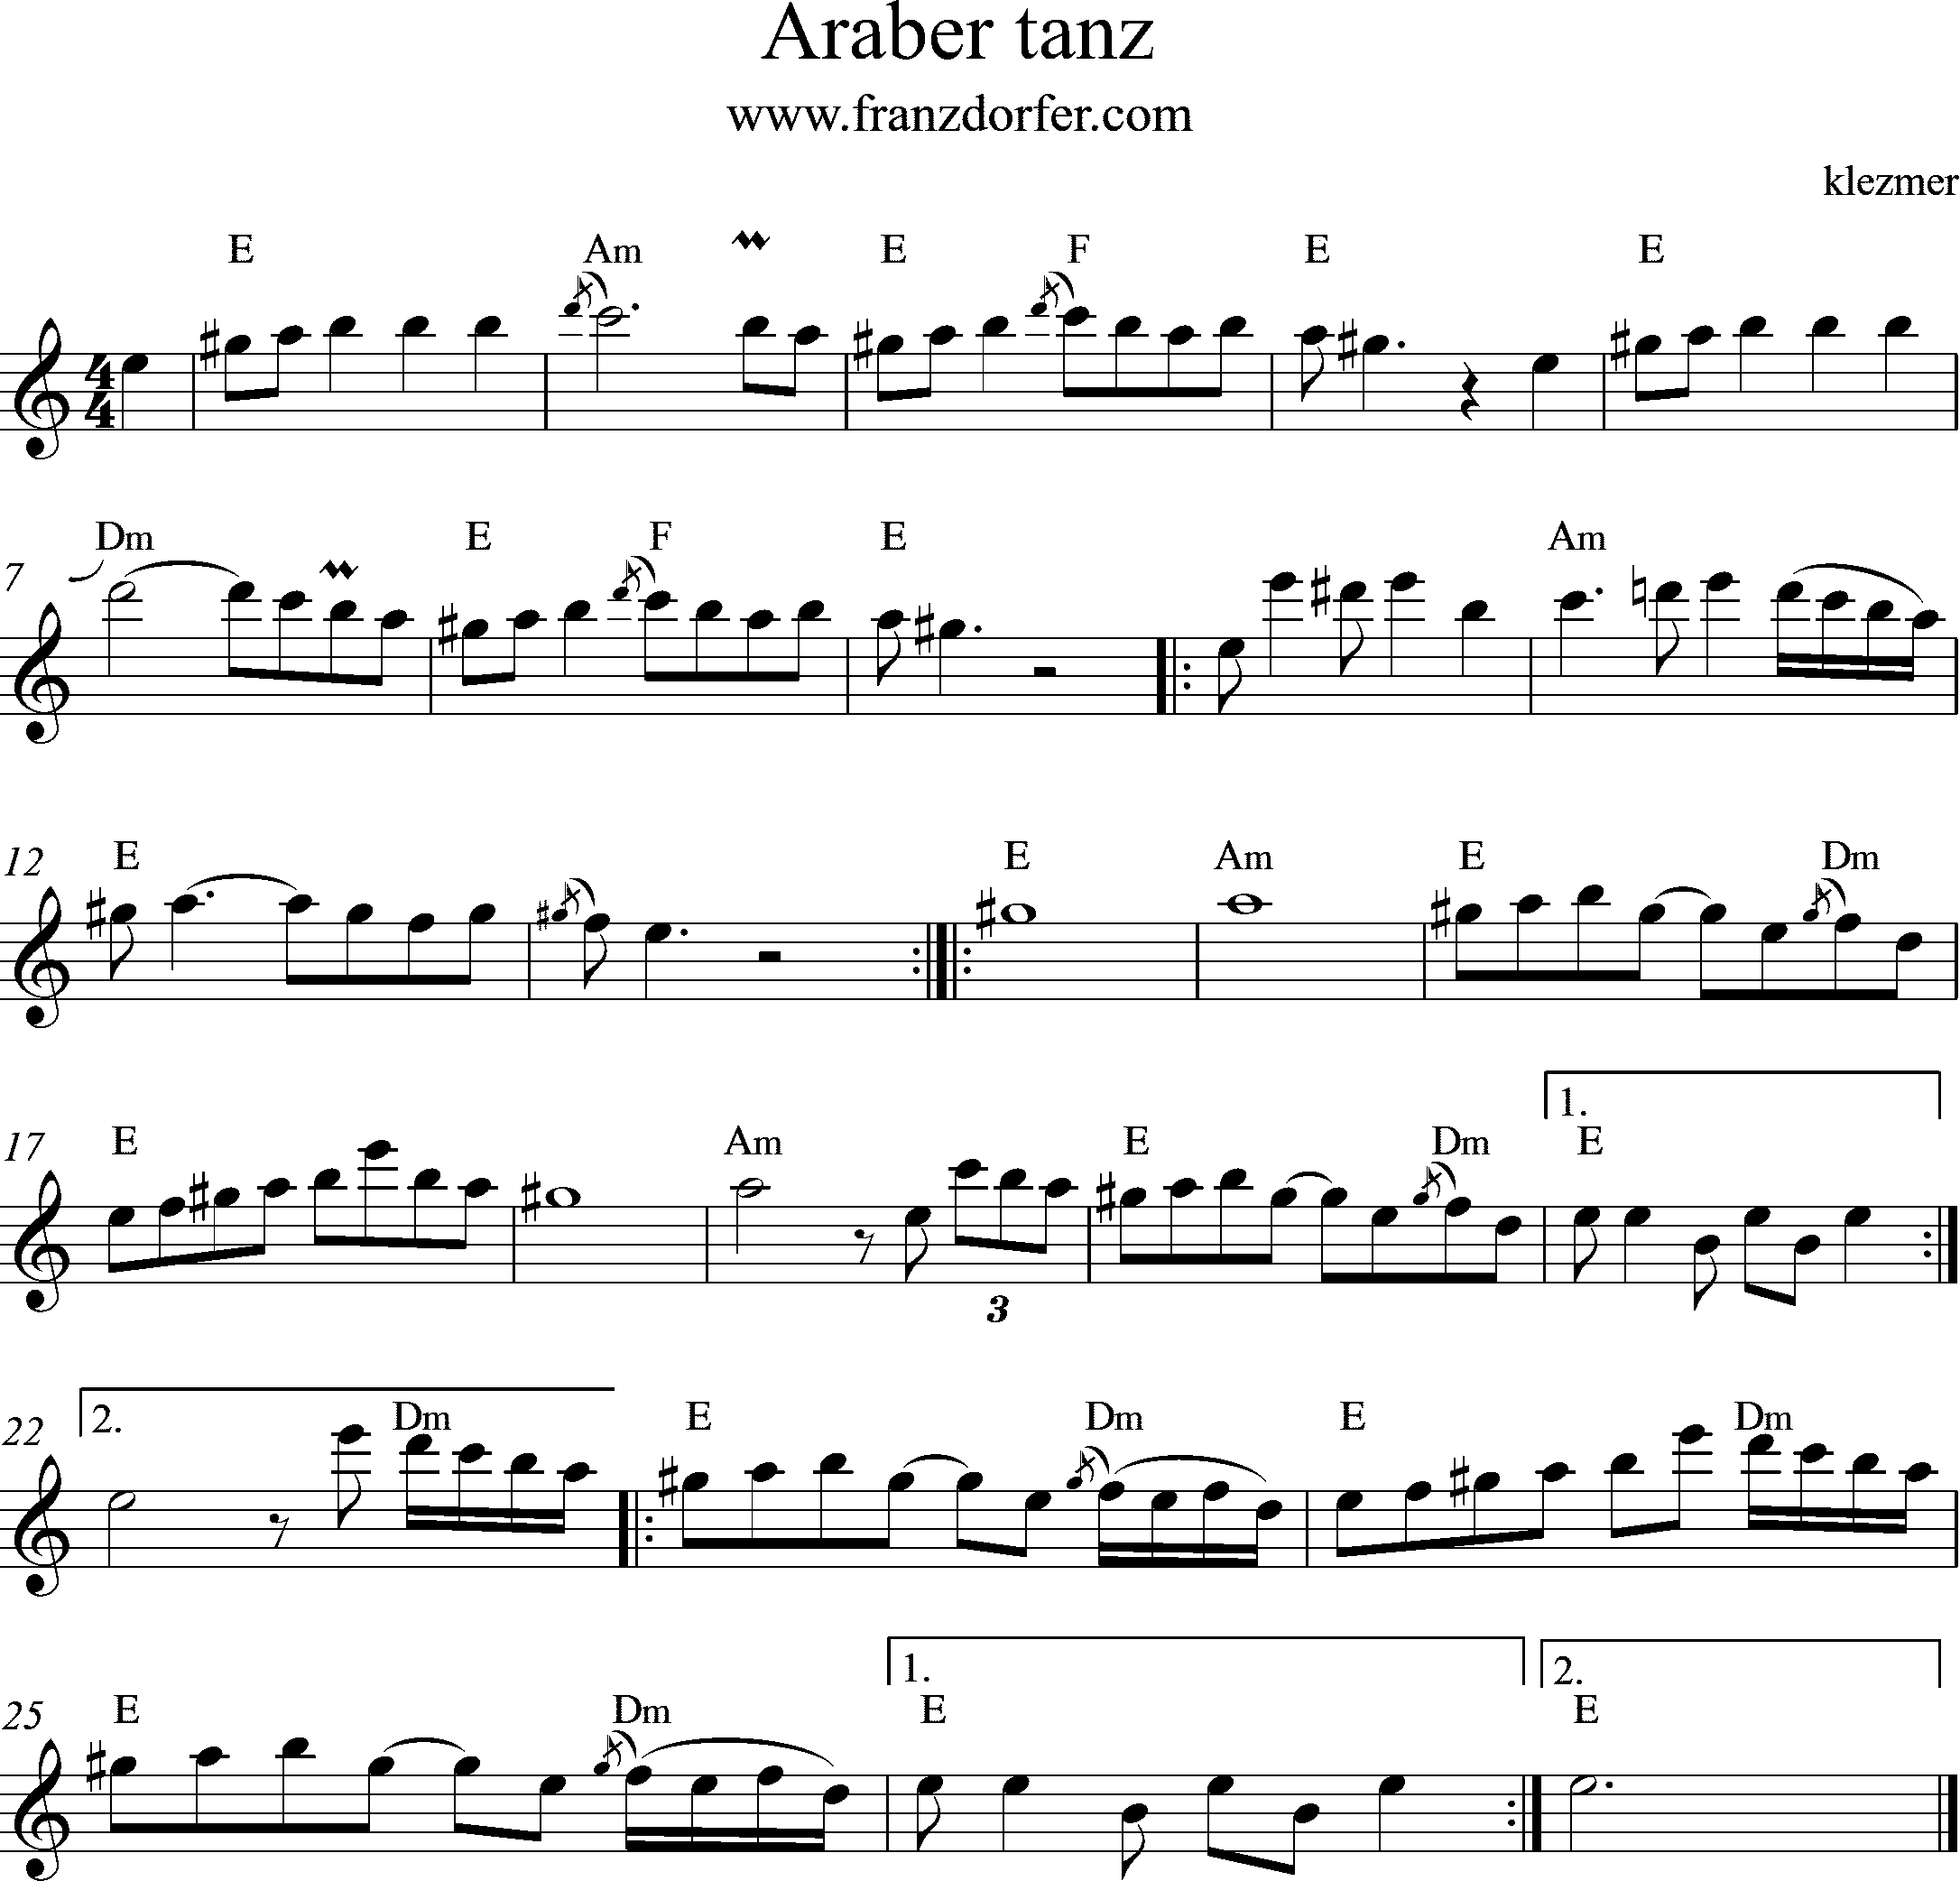 sheetmusic Araber tanz -2